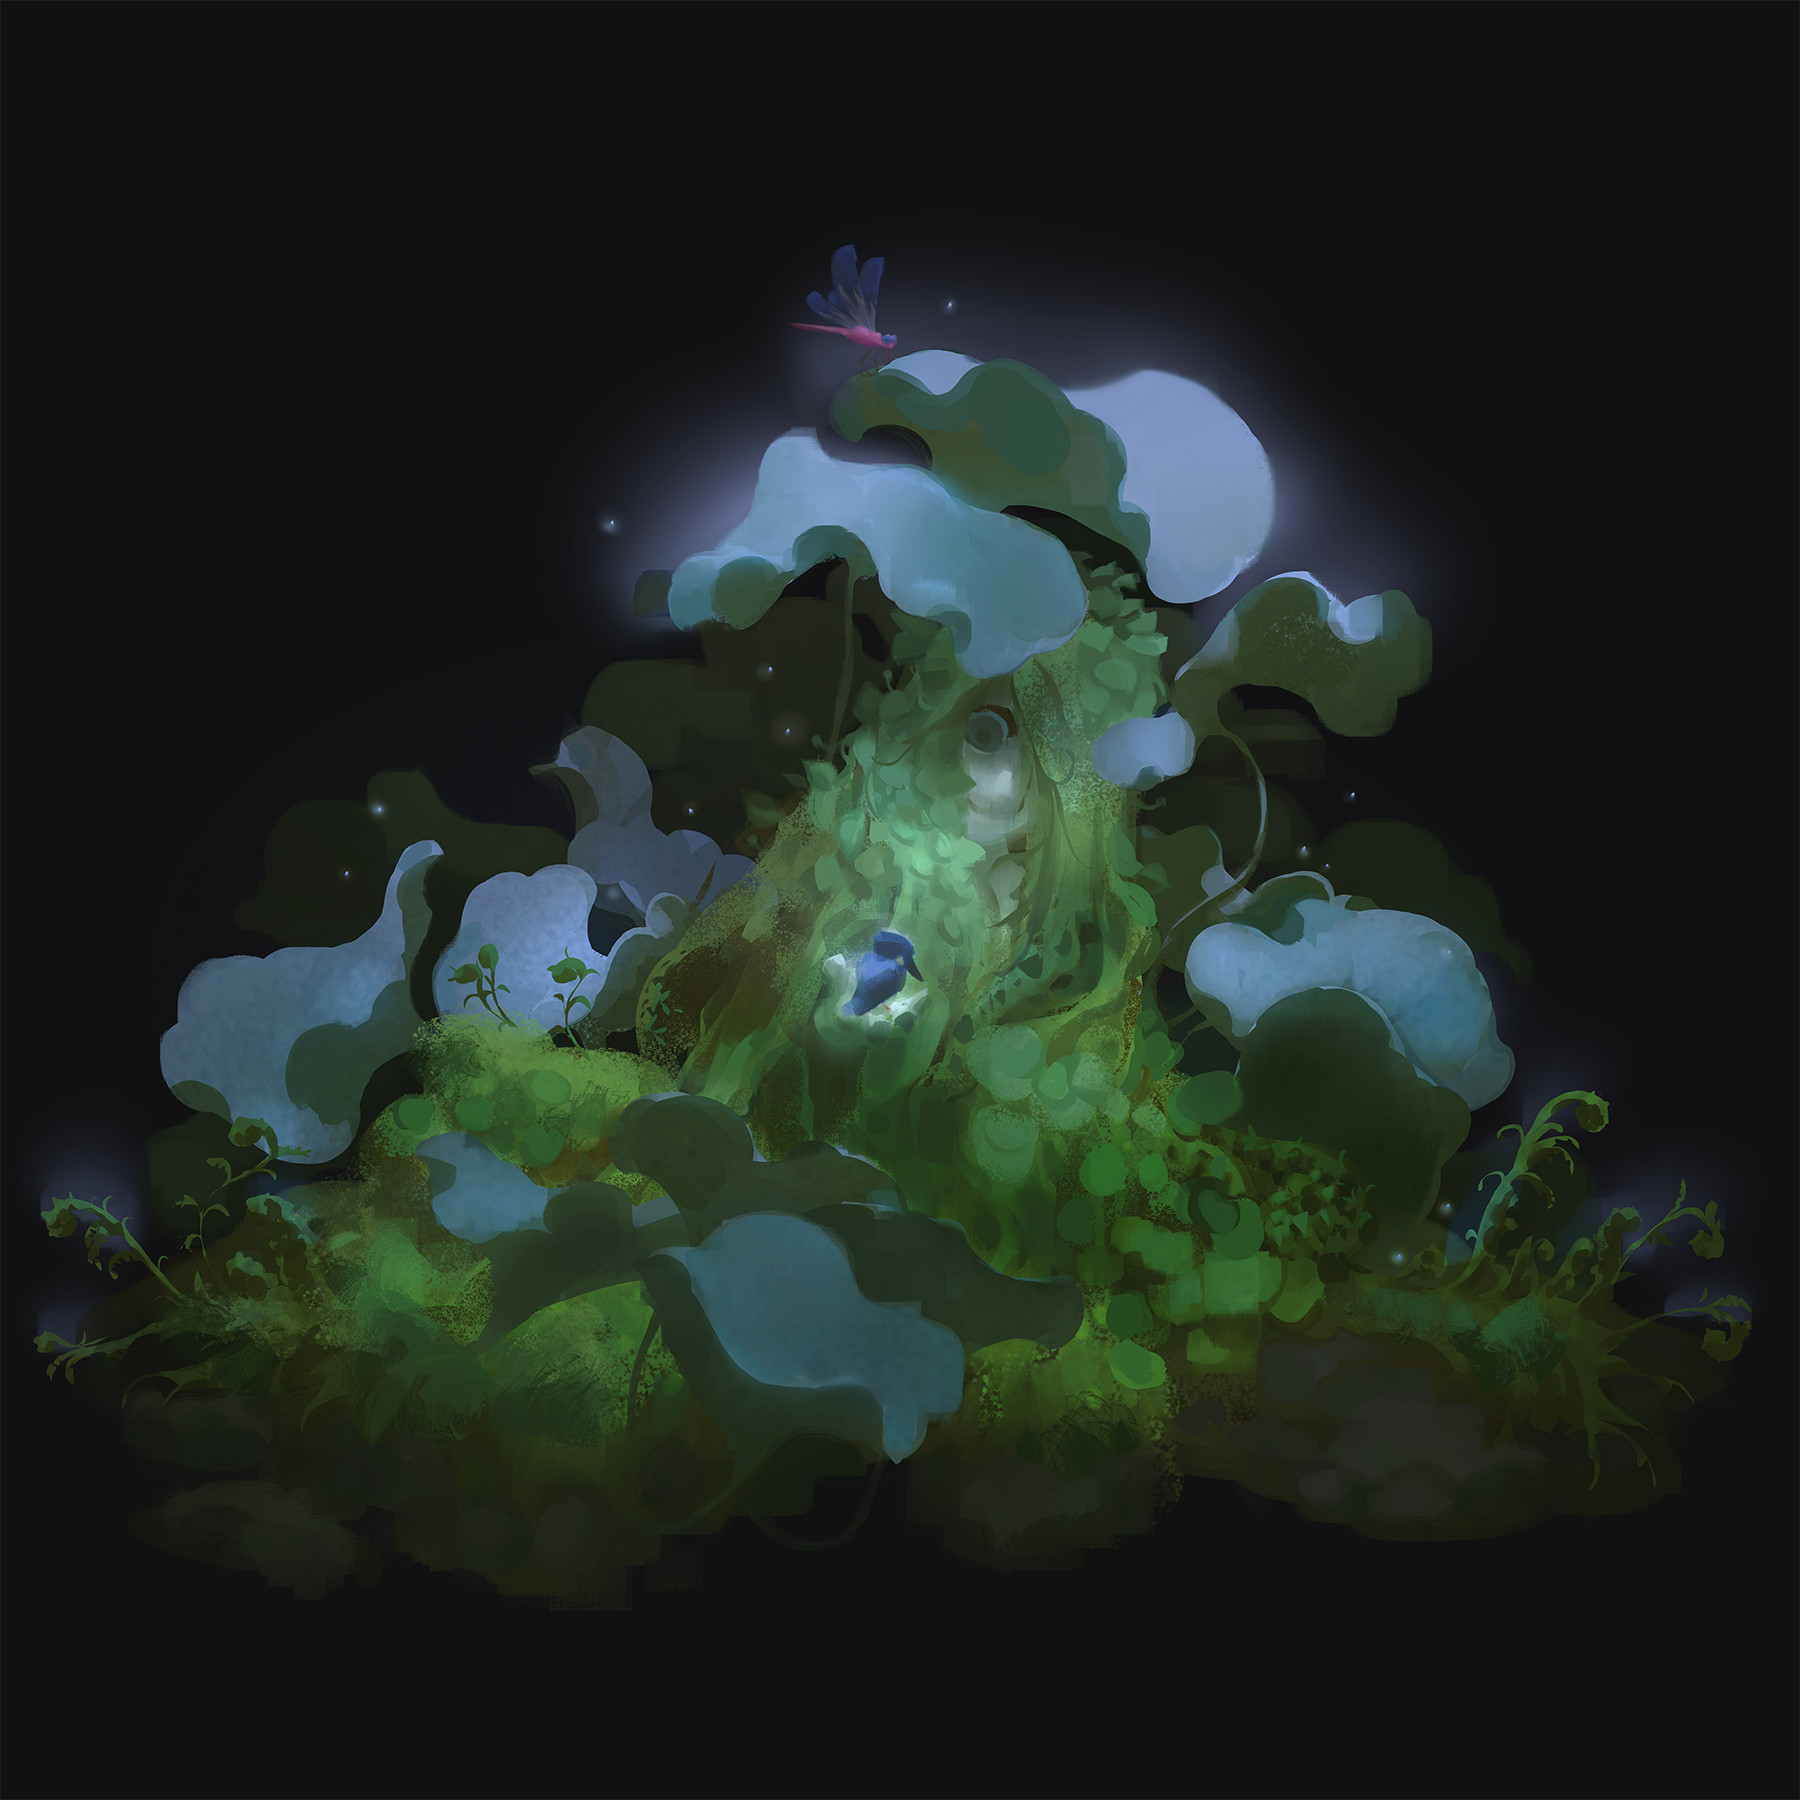 A mossy forest creature looks at a blue bird